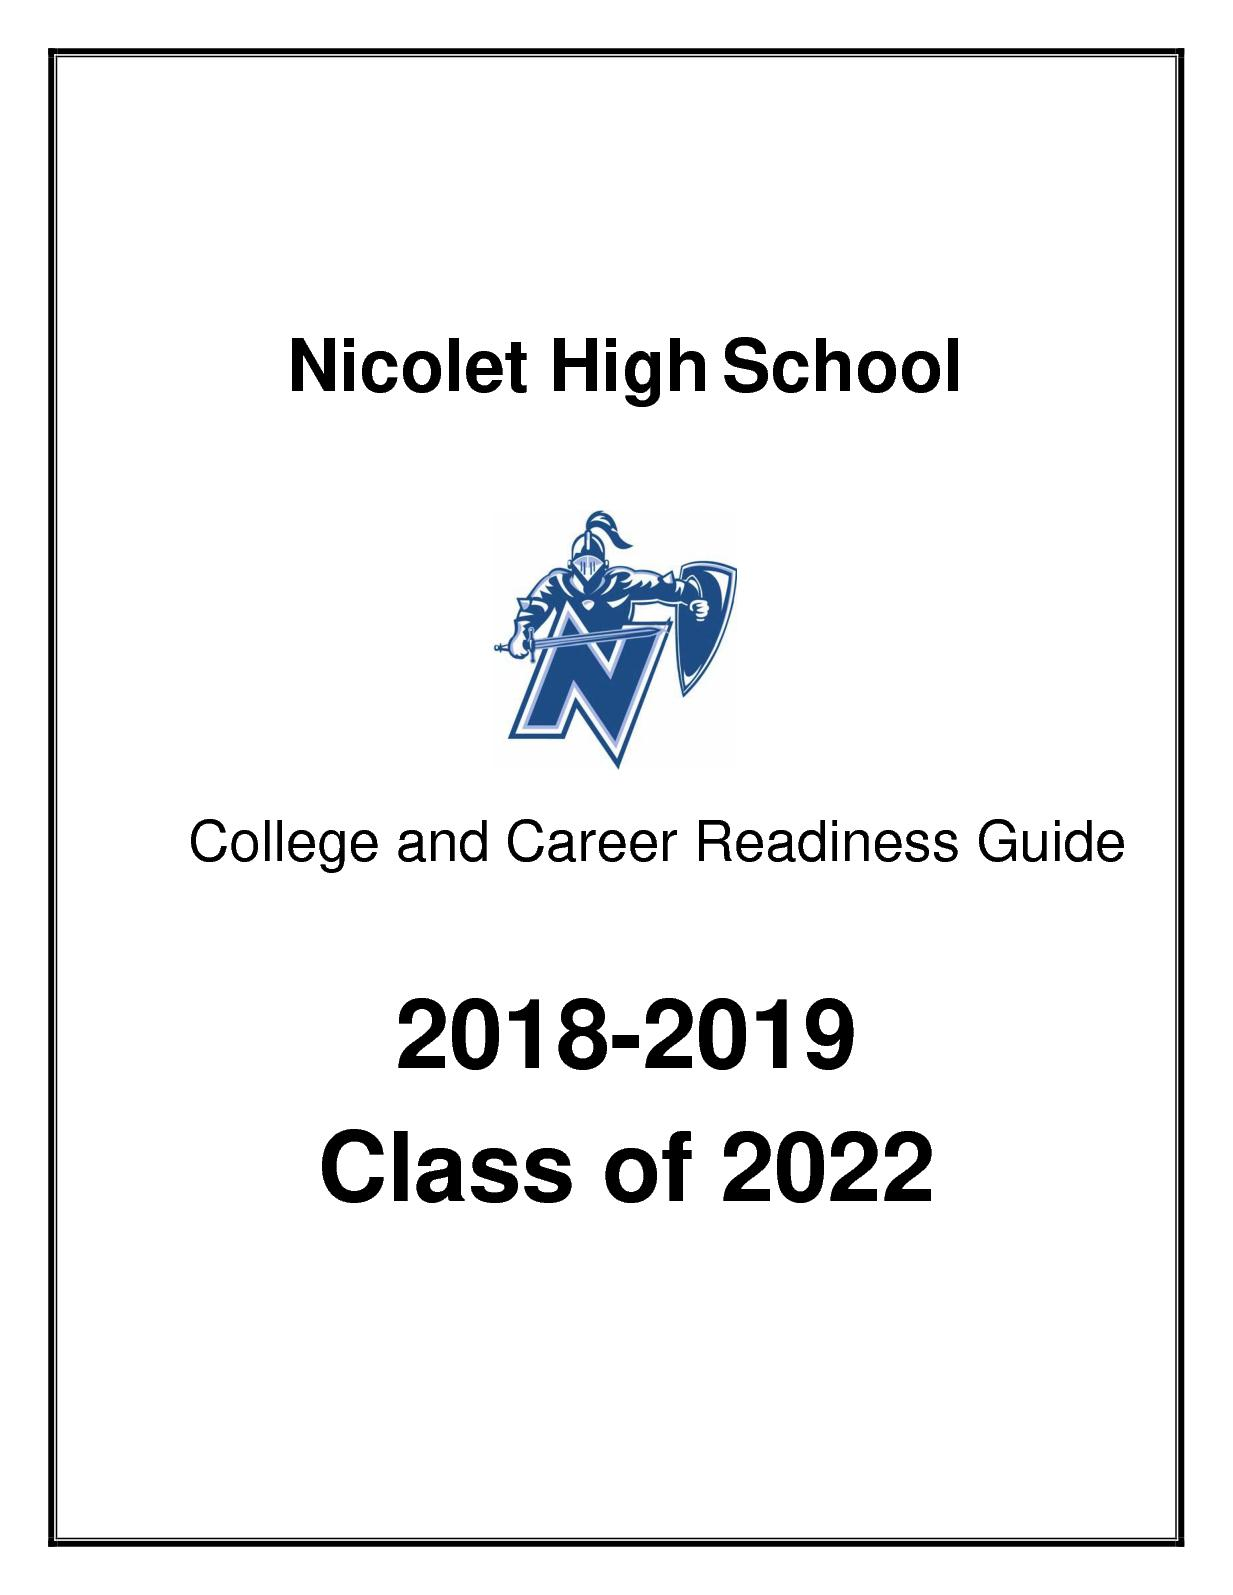 Calaméo - 2018-2019 College And Career Readiness Guide For